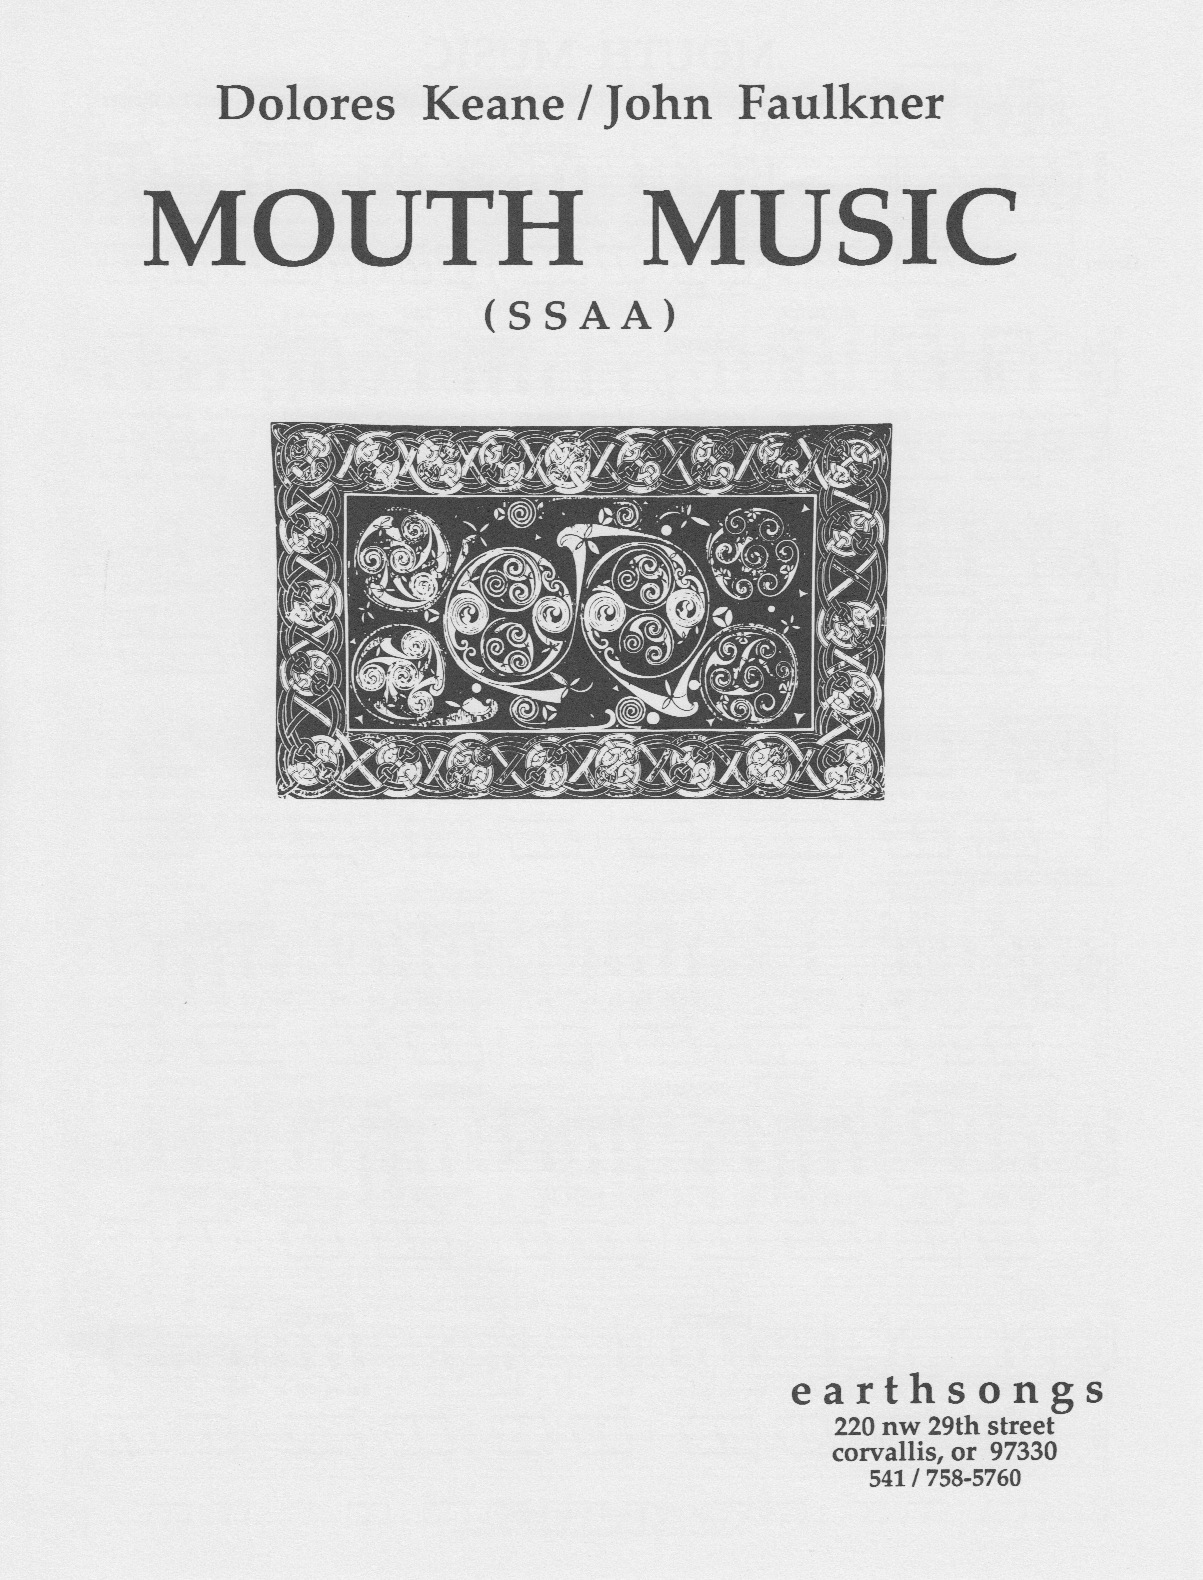 mouth music (ssa)